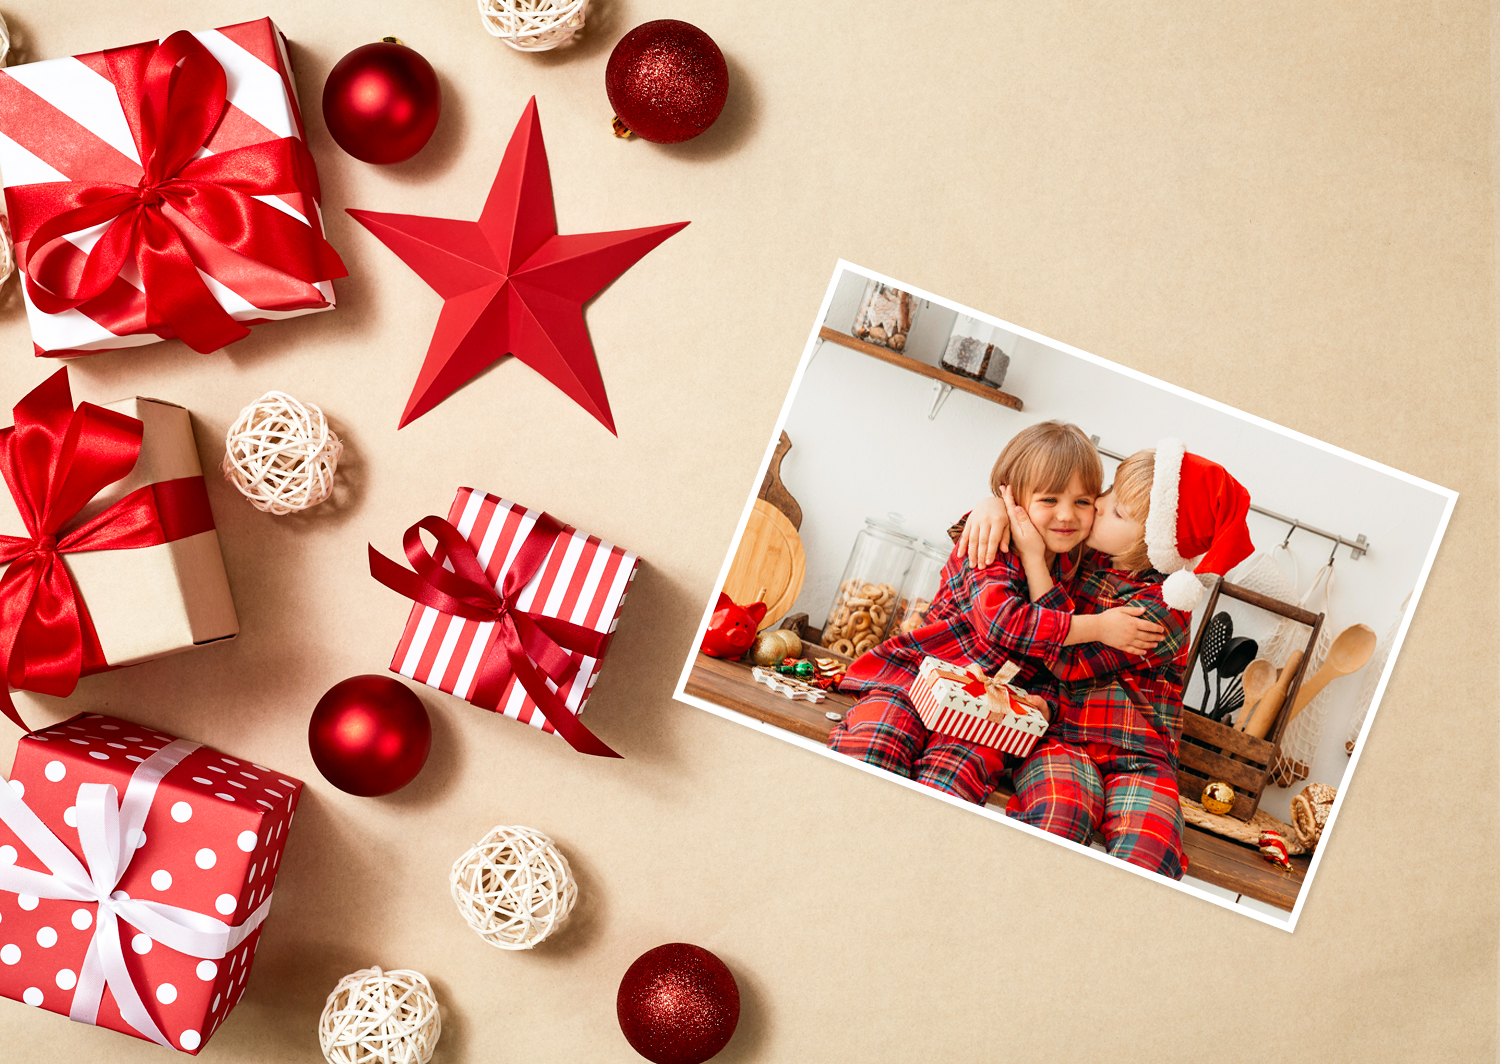 Design options for your Christmas card